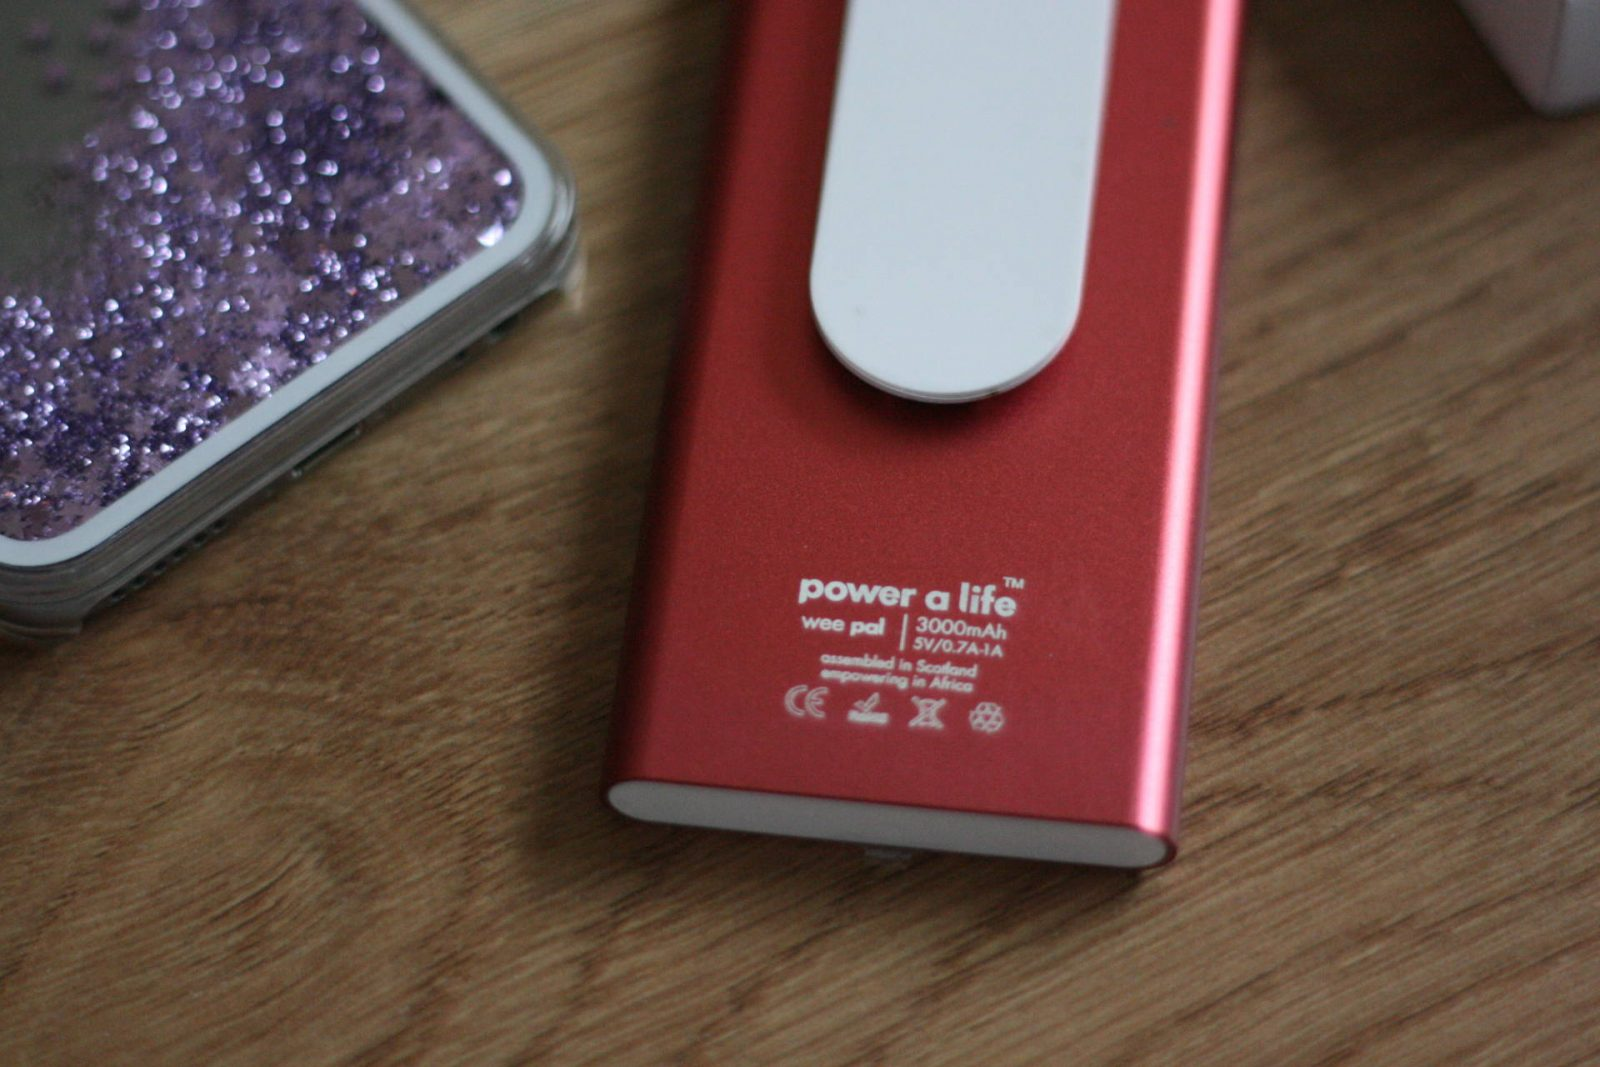 tech review: power a life's 'wee pal' portable charger;